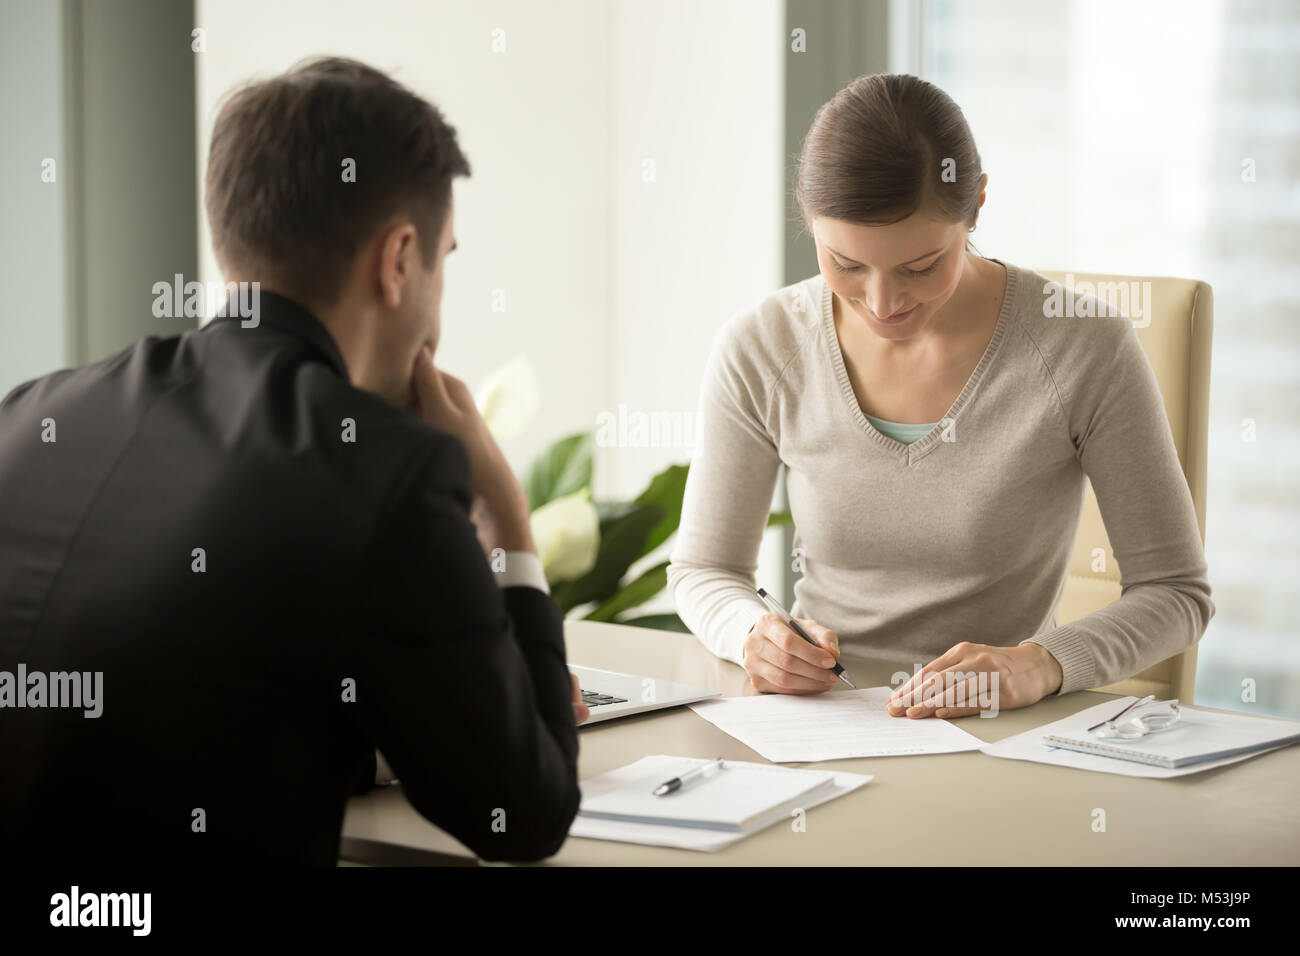 Businesswoman signing contract with businessman - Stock Image